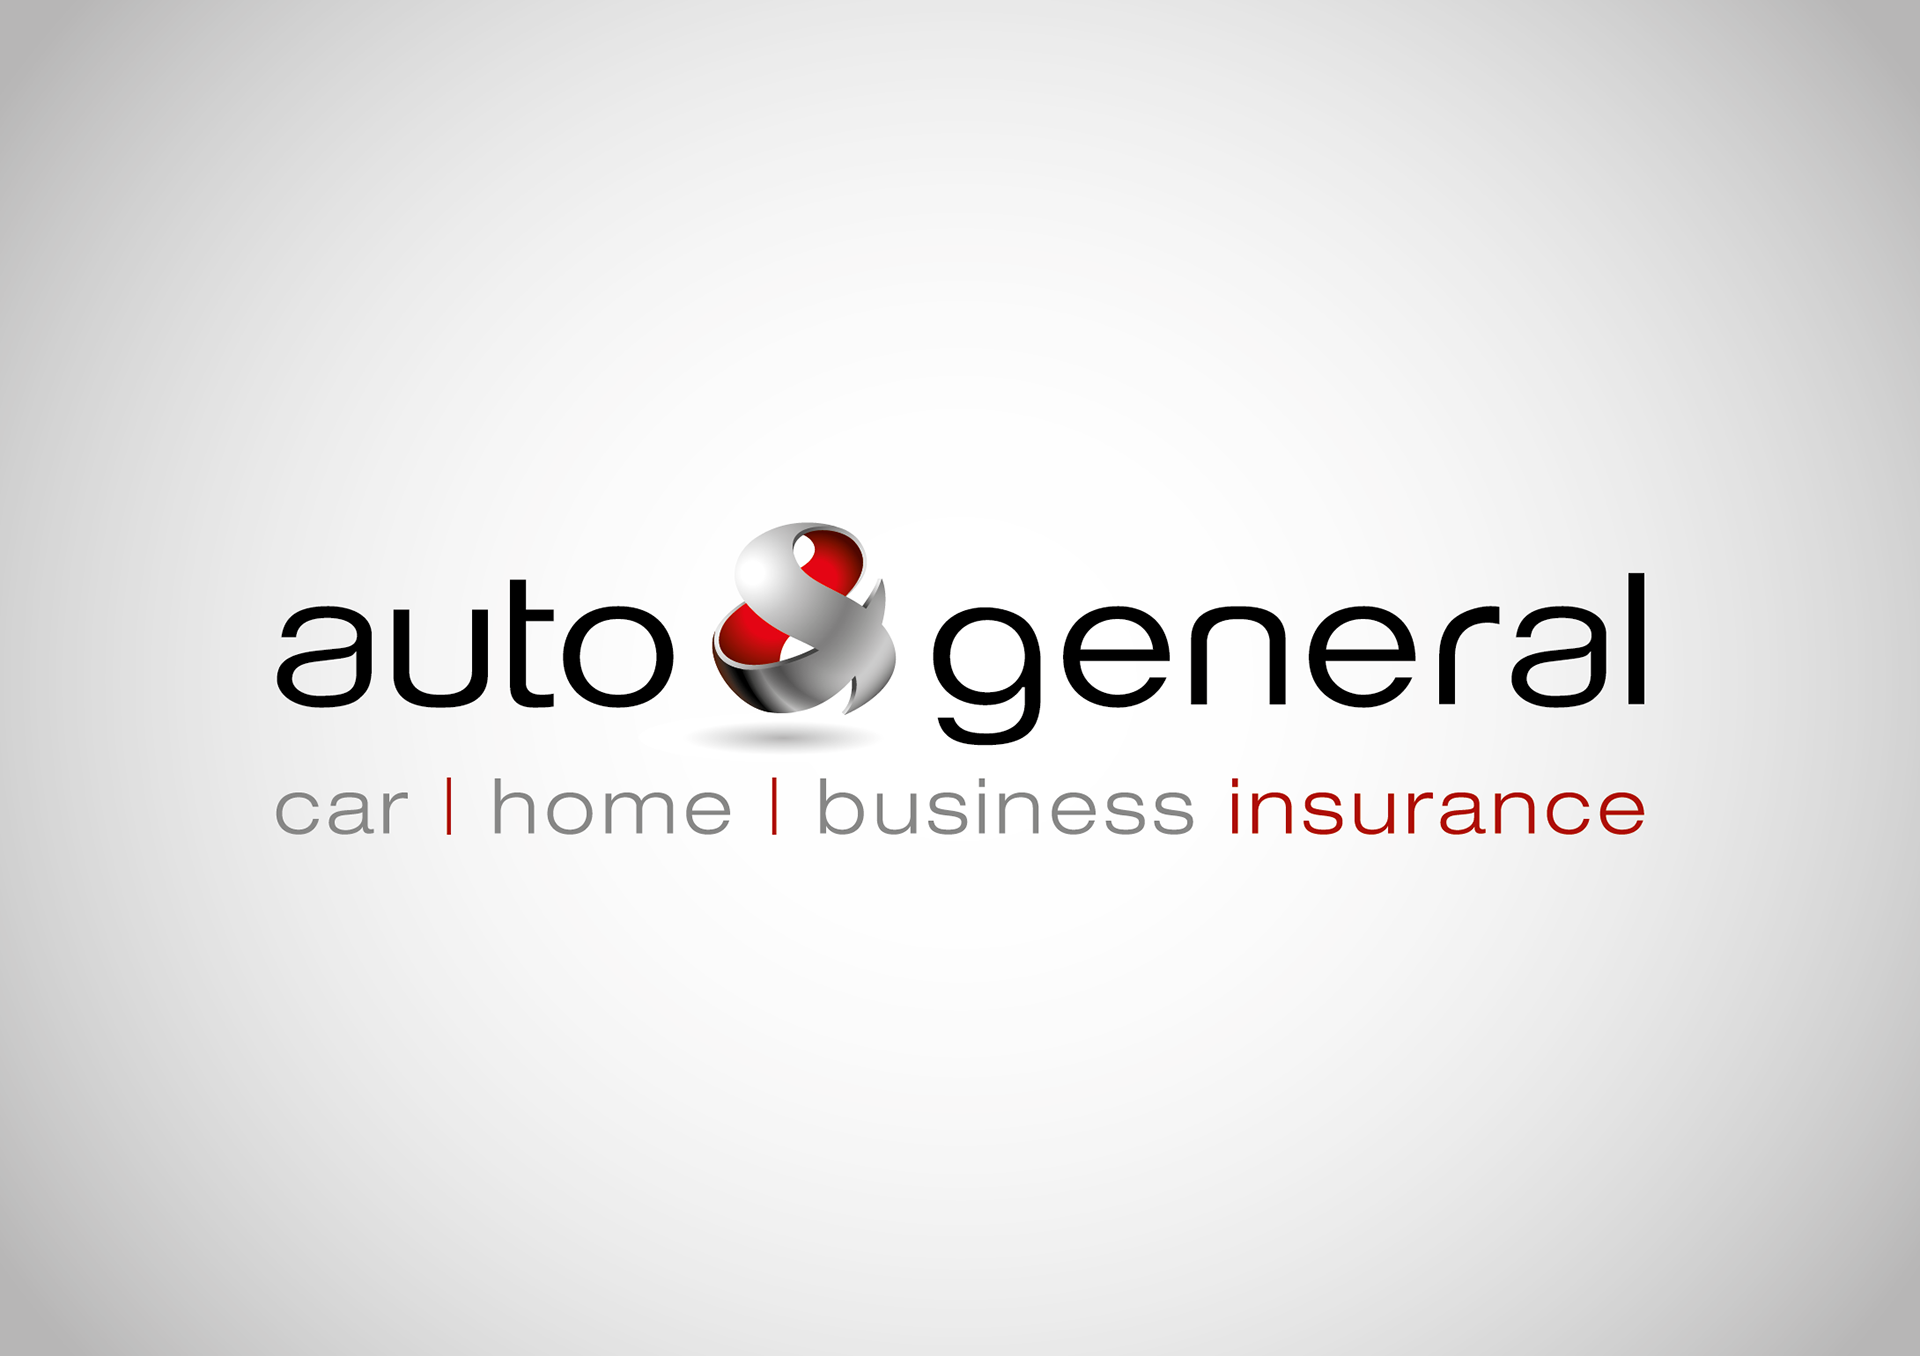 auto and general